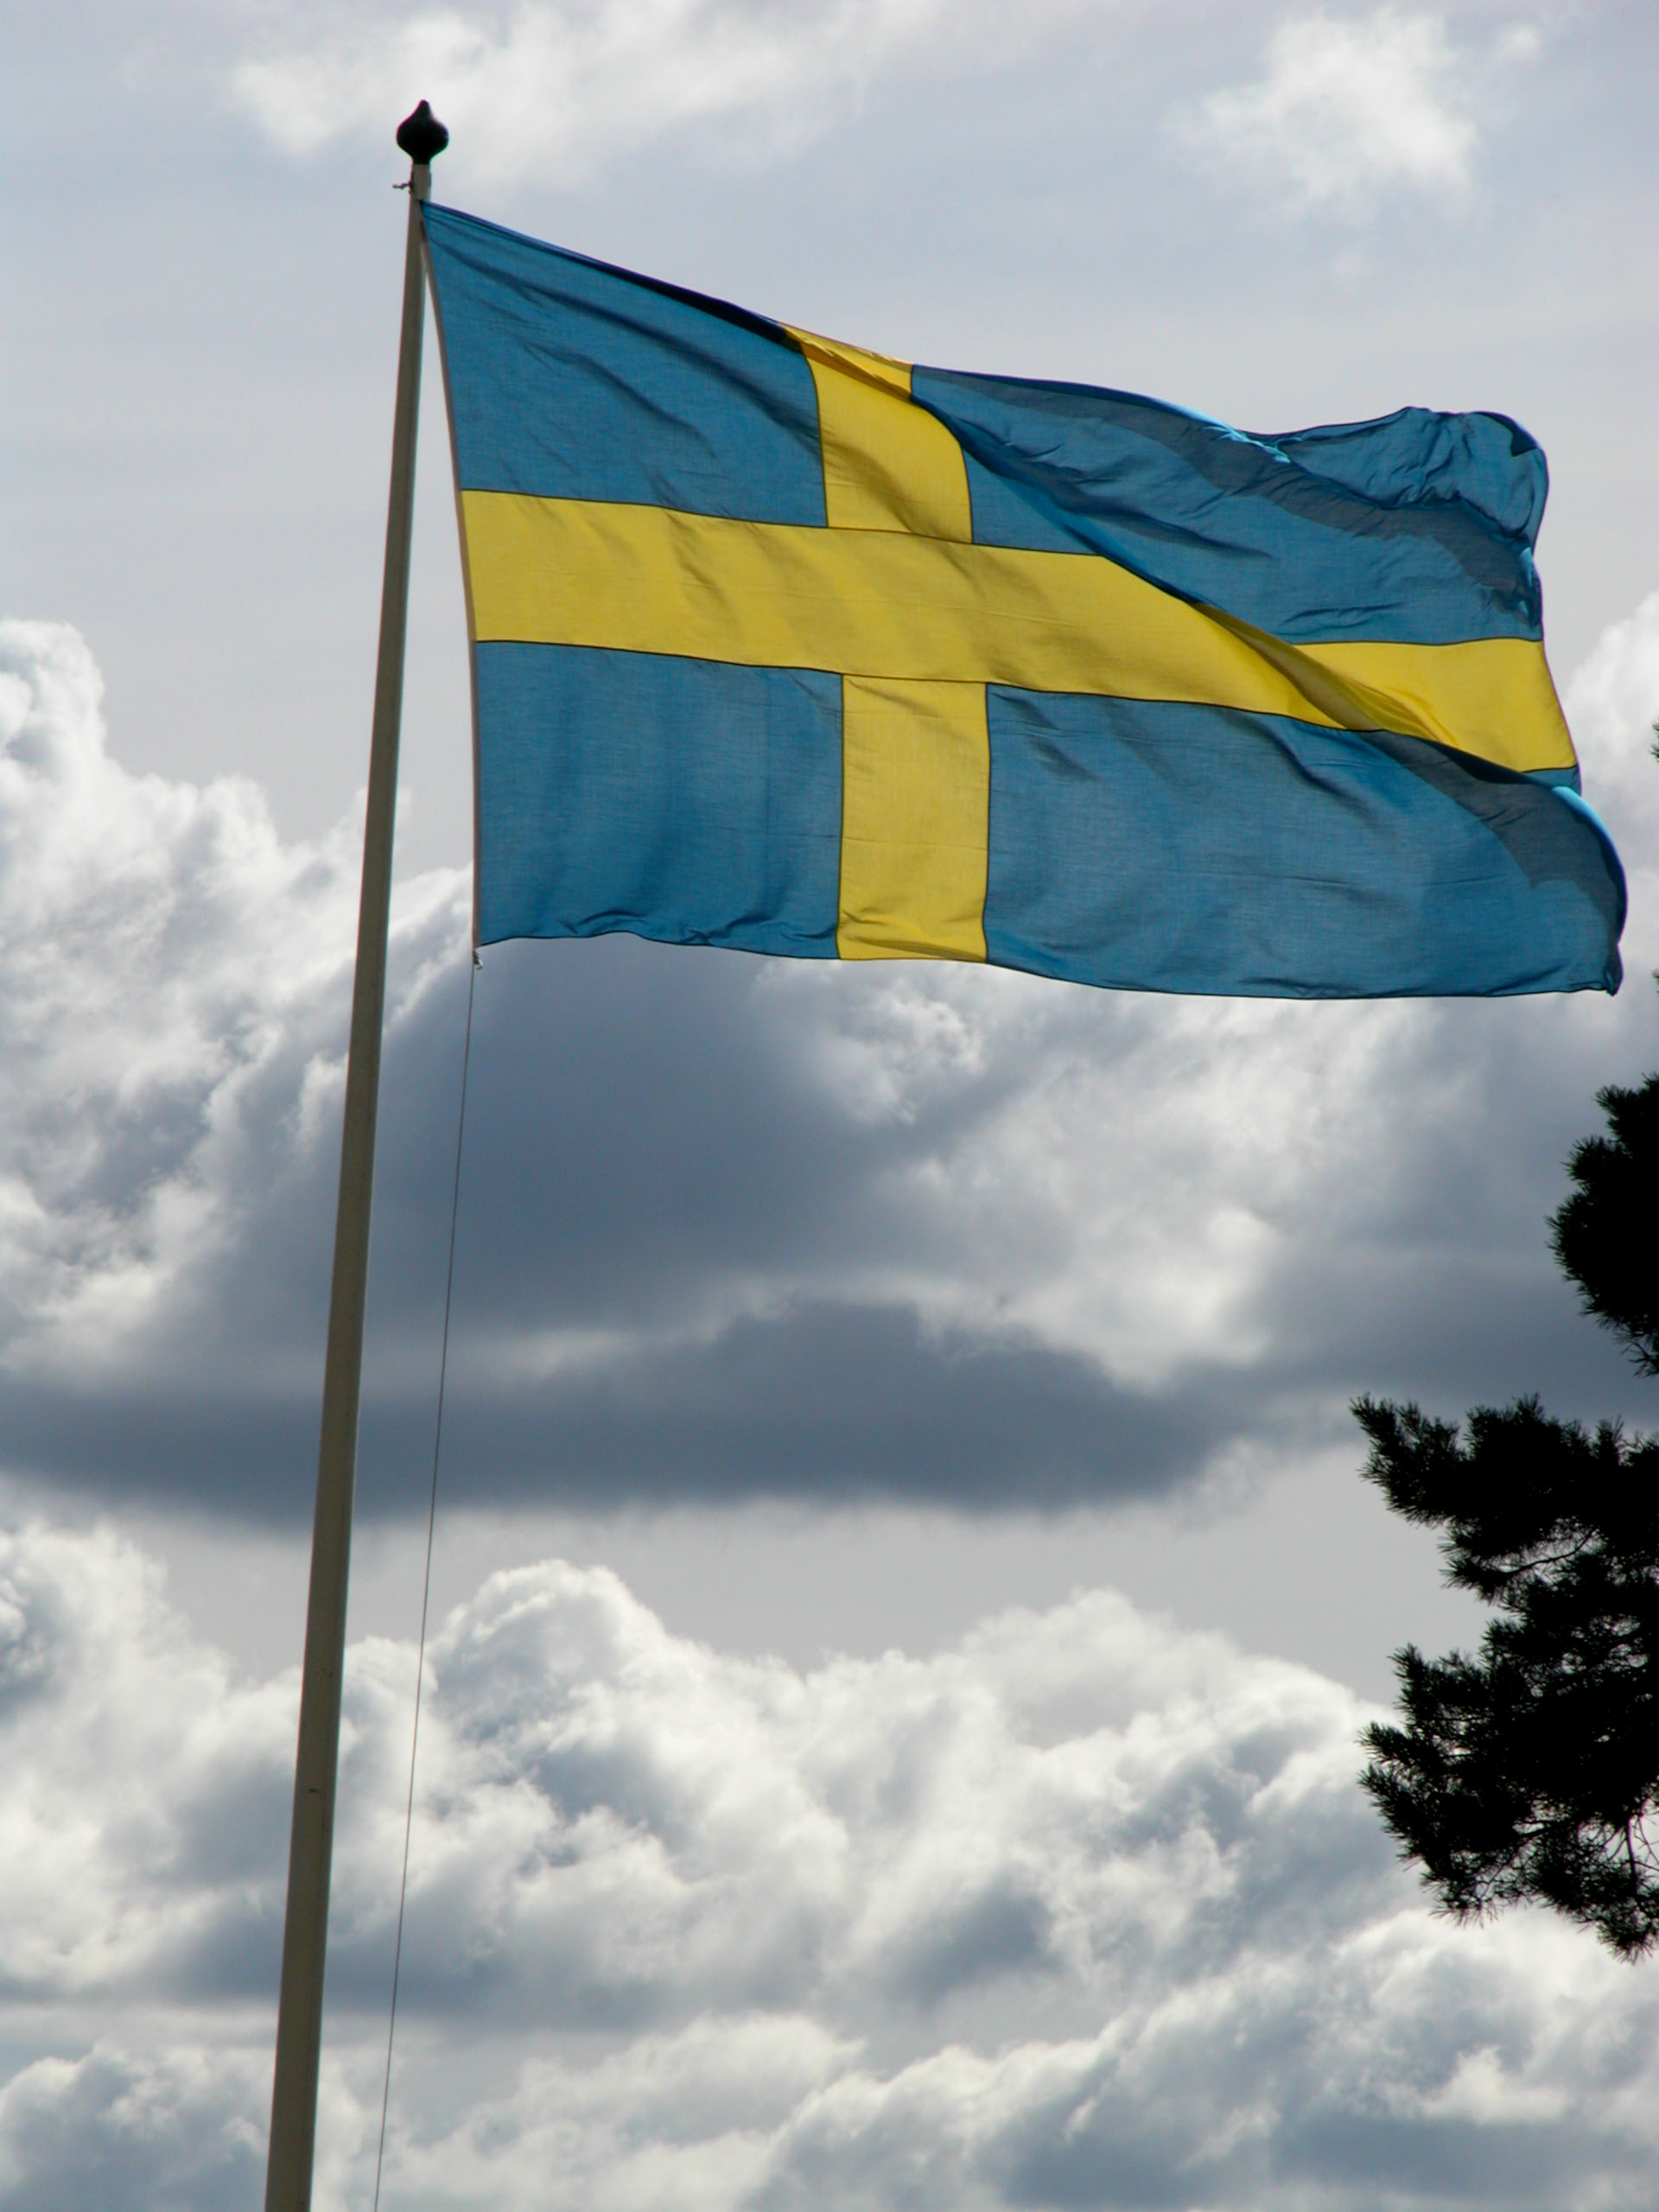 Sweden responds to EU by introducing minimum gambling age